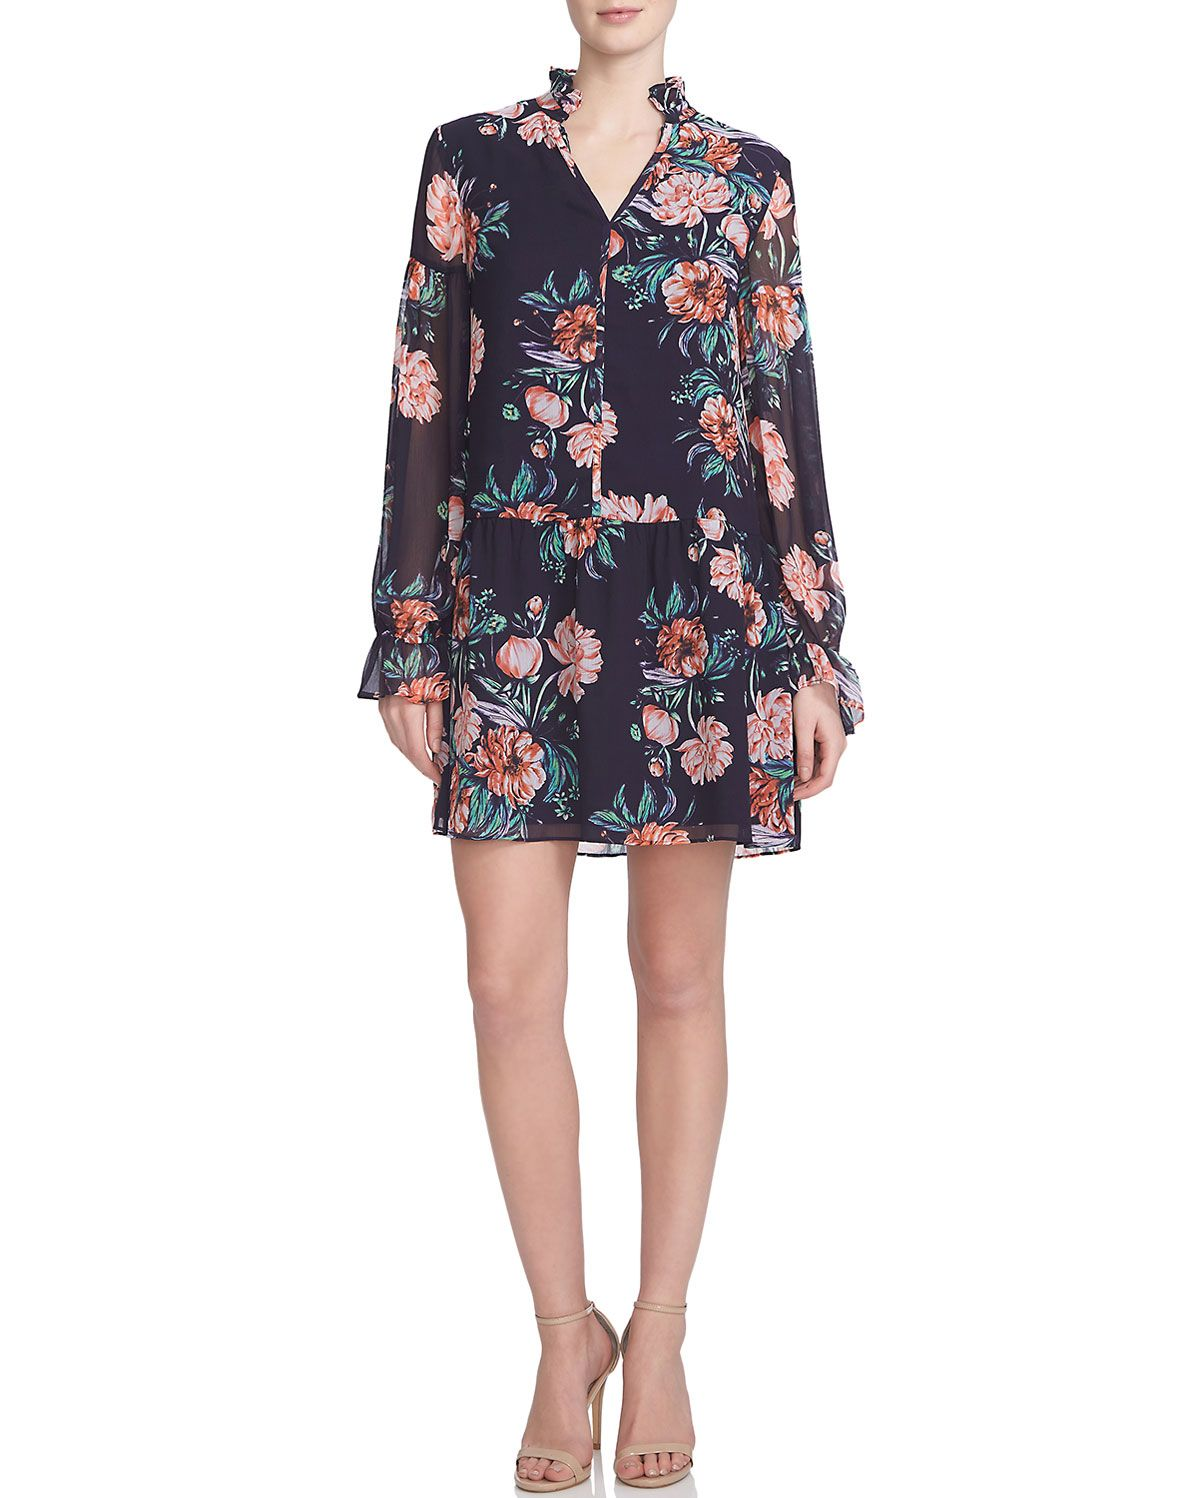 Floral-Print Dropped-Waist Dress, Poppy - Cynthia Steffe